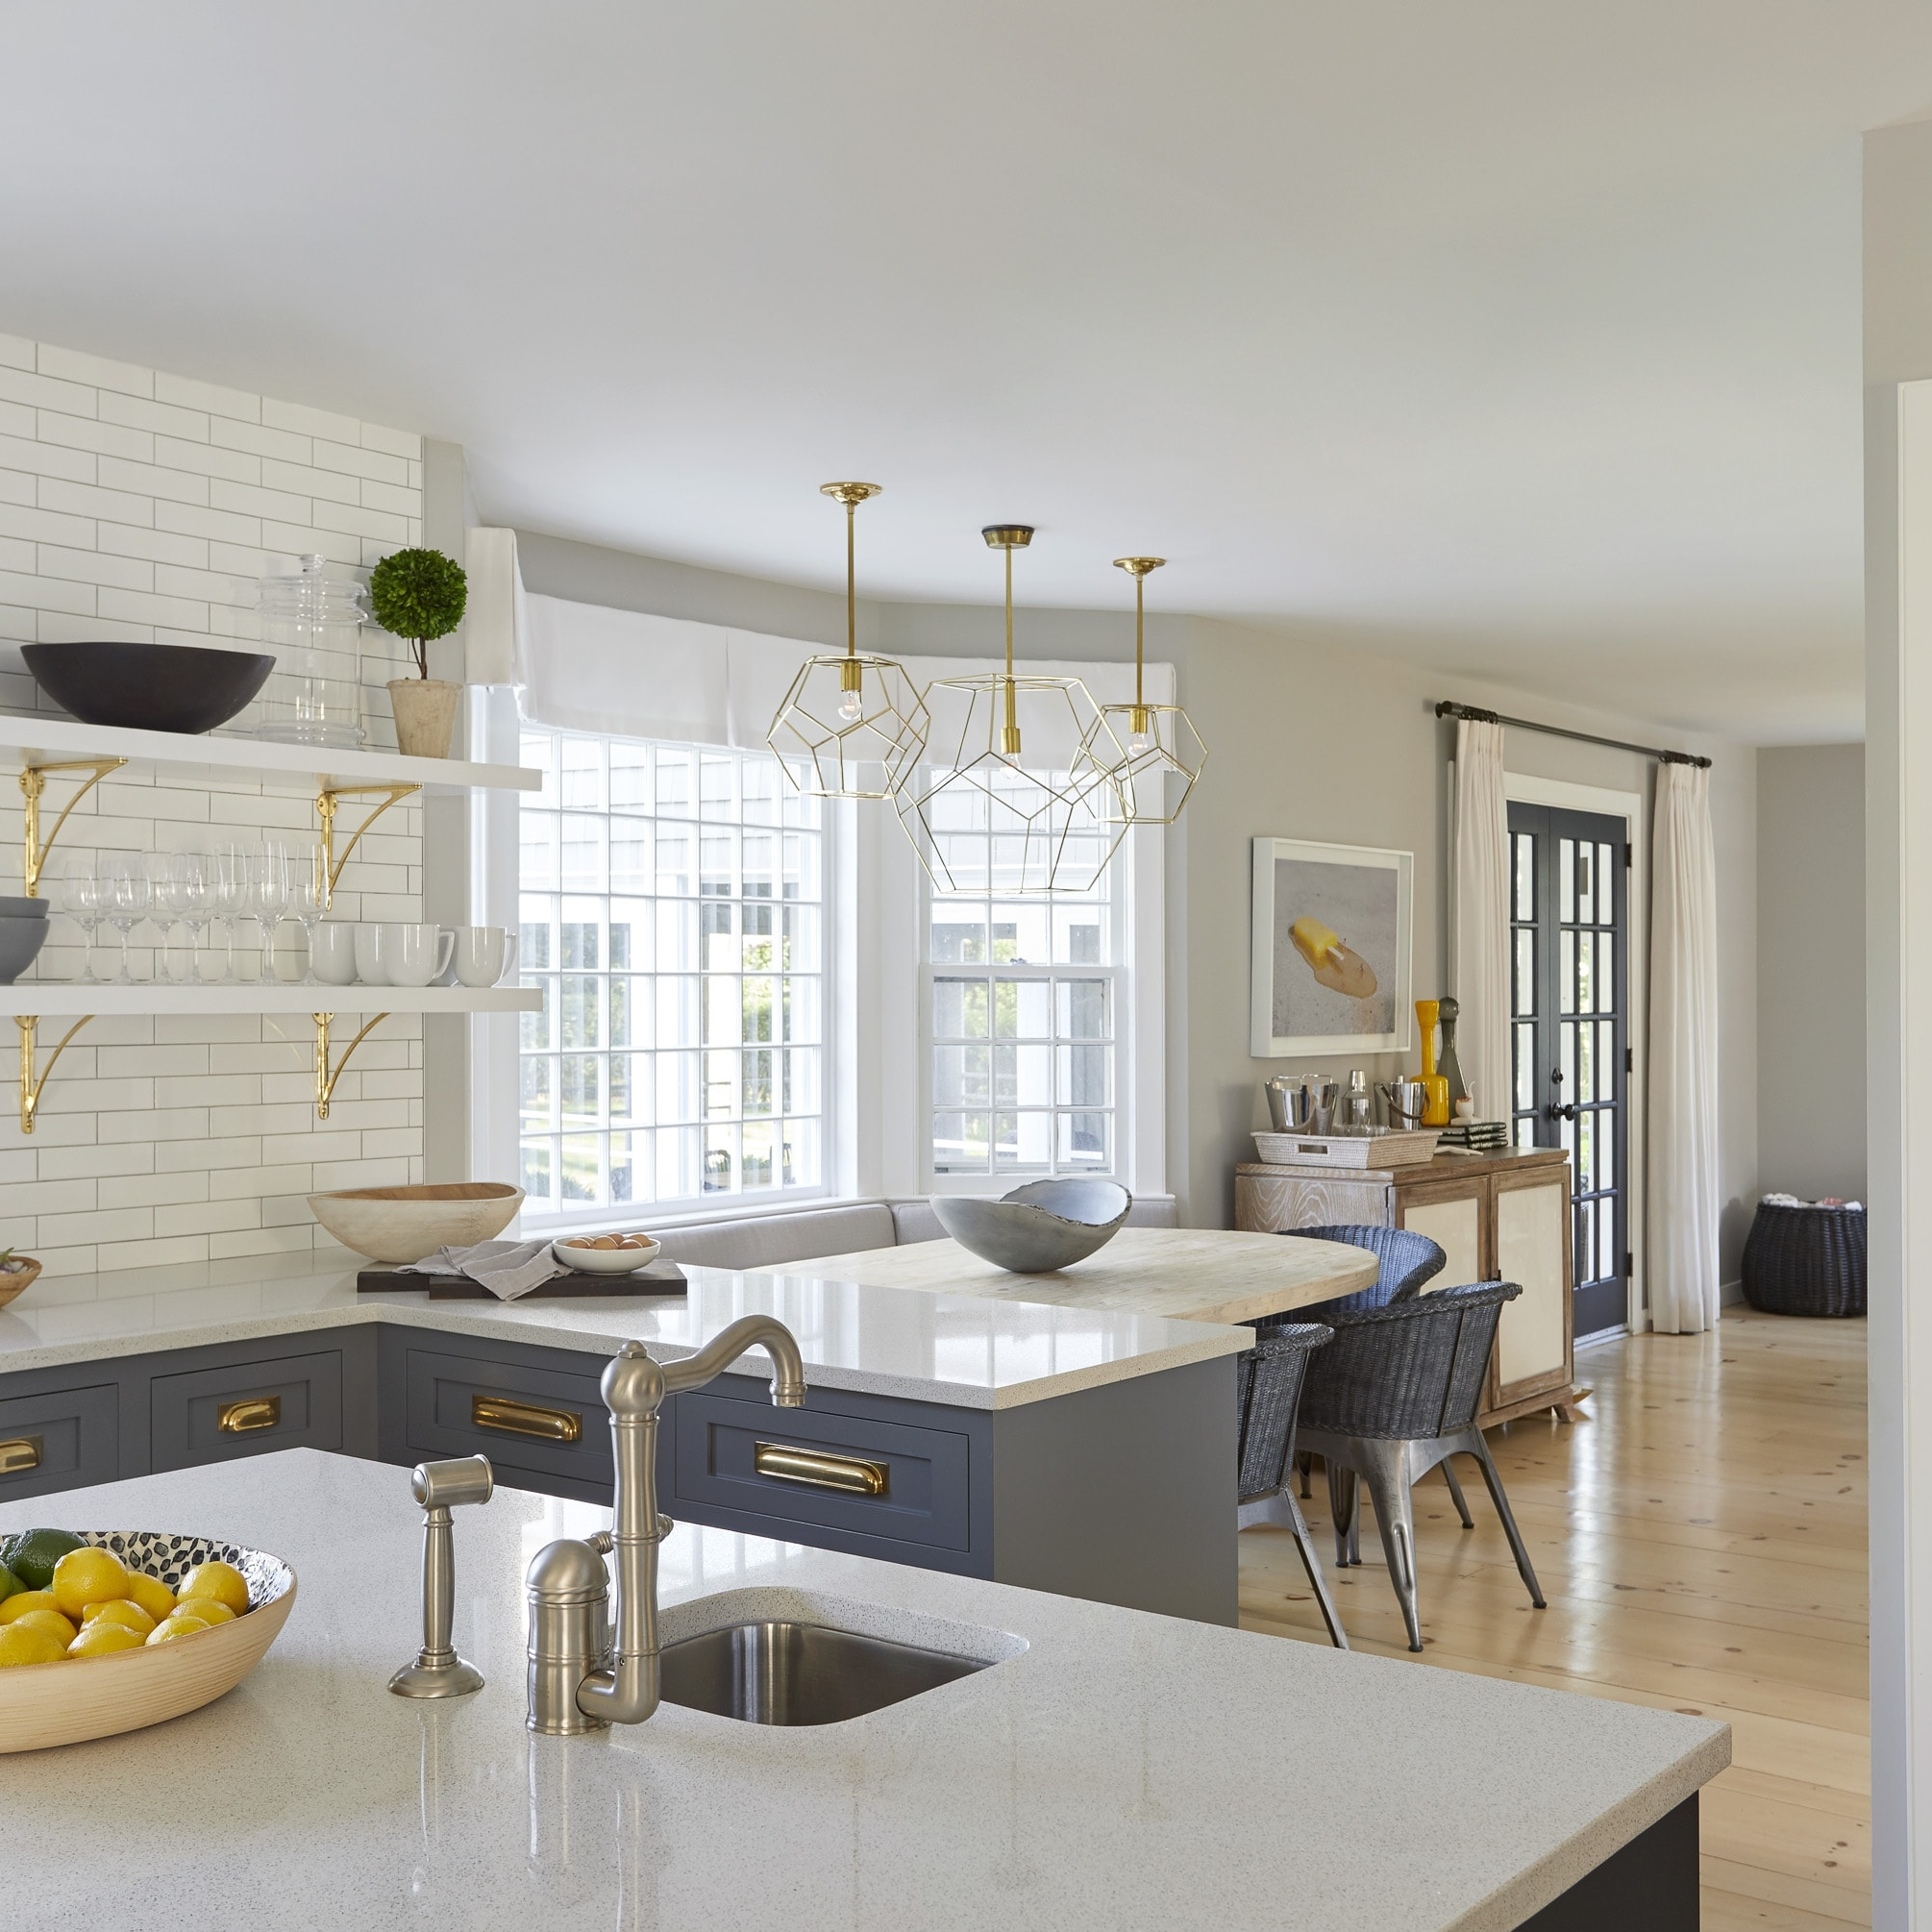 Mixed metals in the kitchen – Blog by Darci Hether New York